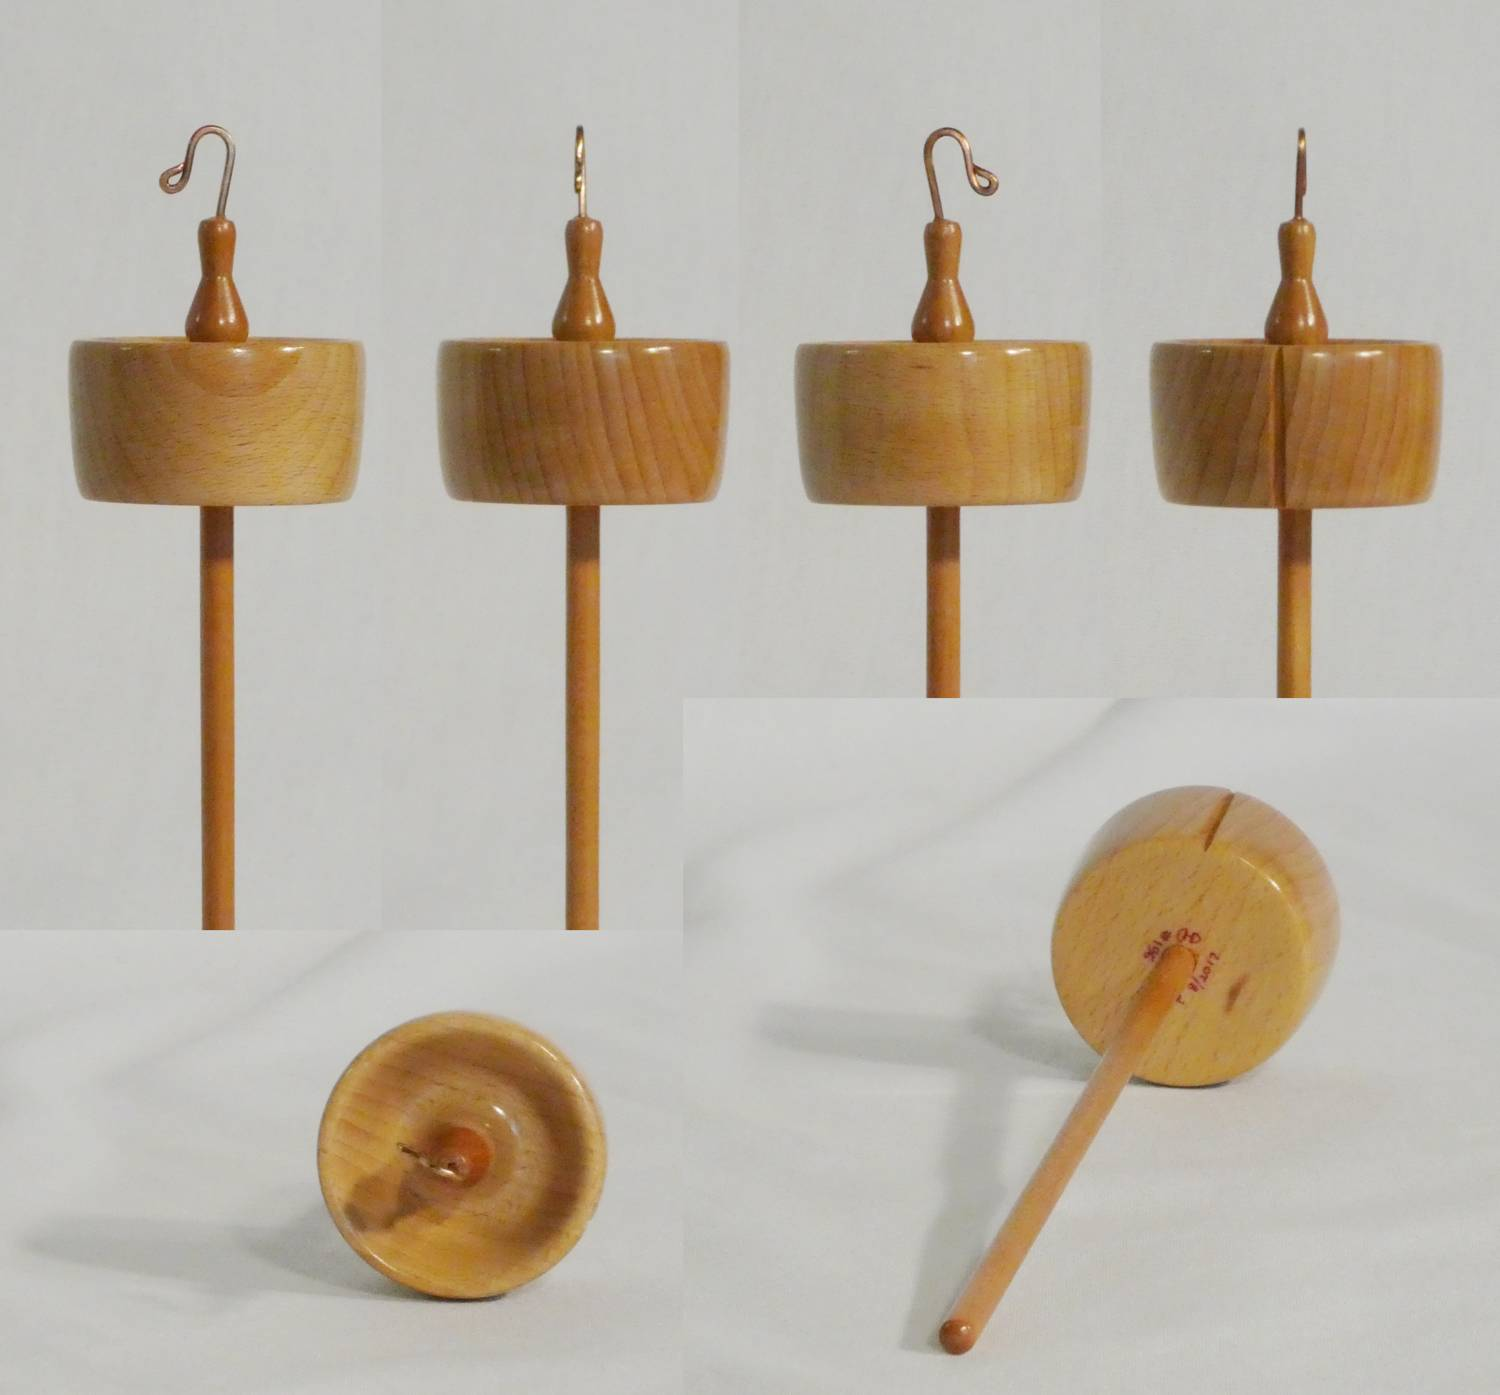 High whorl suspended spindle for spinning yarn from wool handmade by Cynthia D. Haney, a woman woodturner, from Beech and Cherry woods.  Signed number 196.